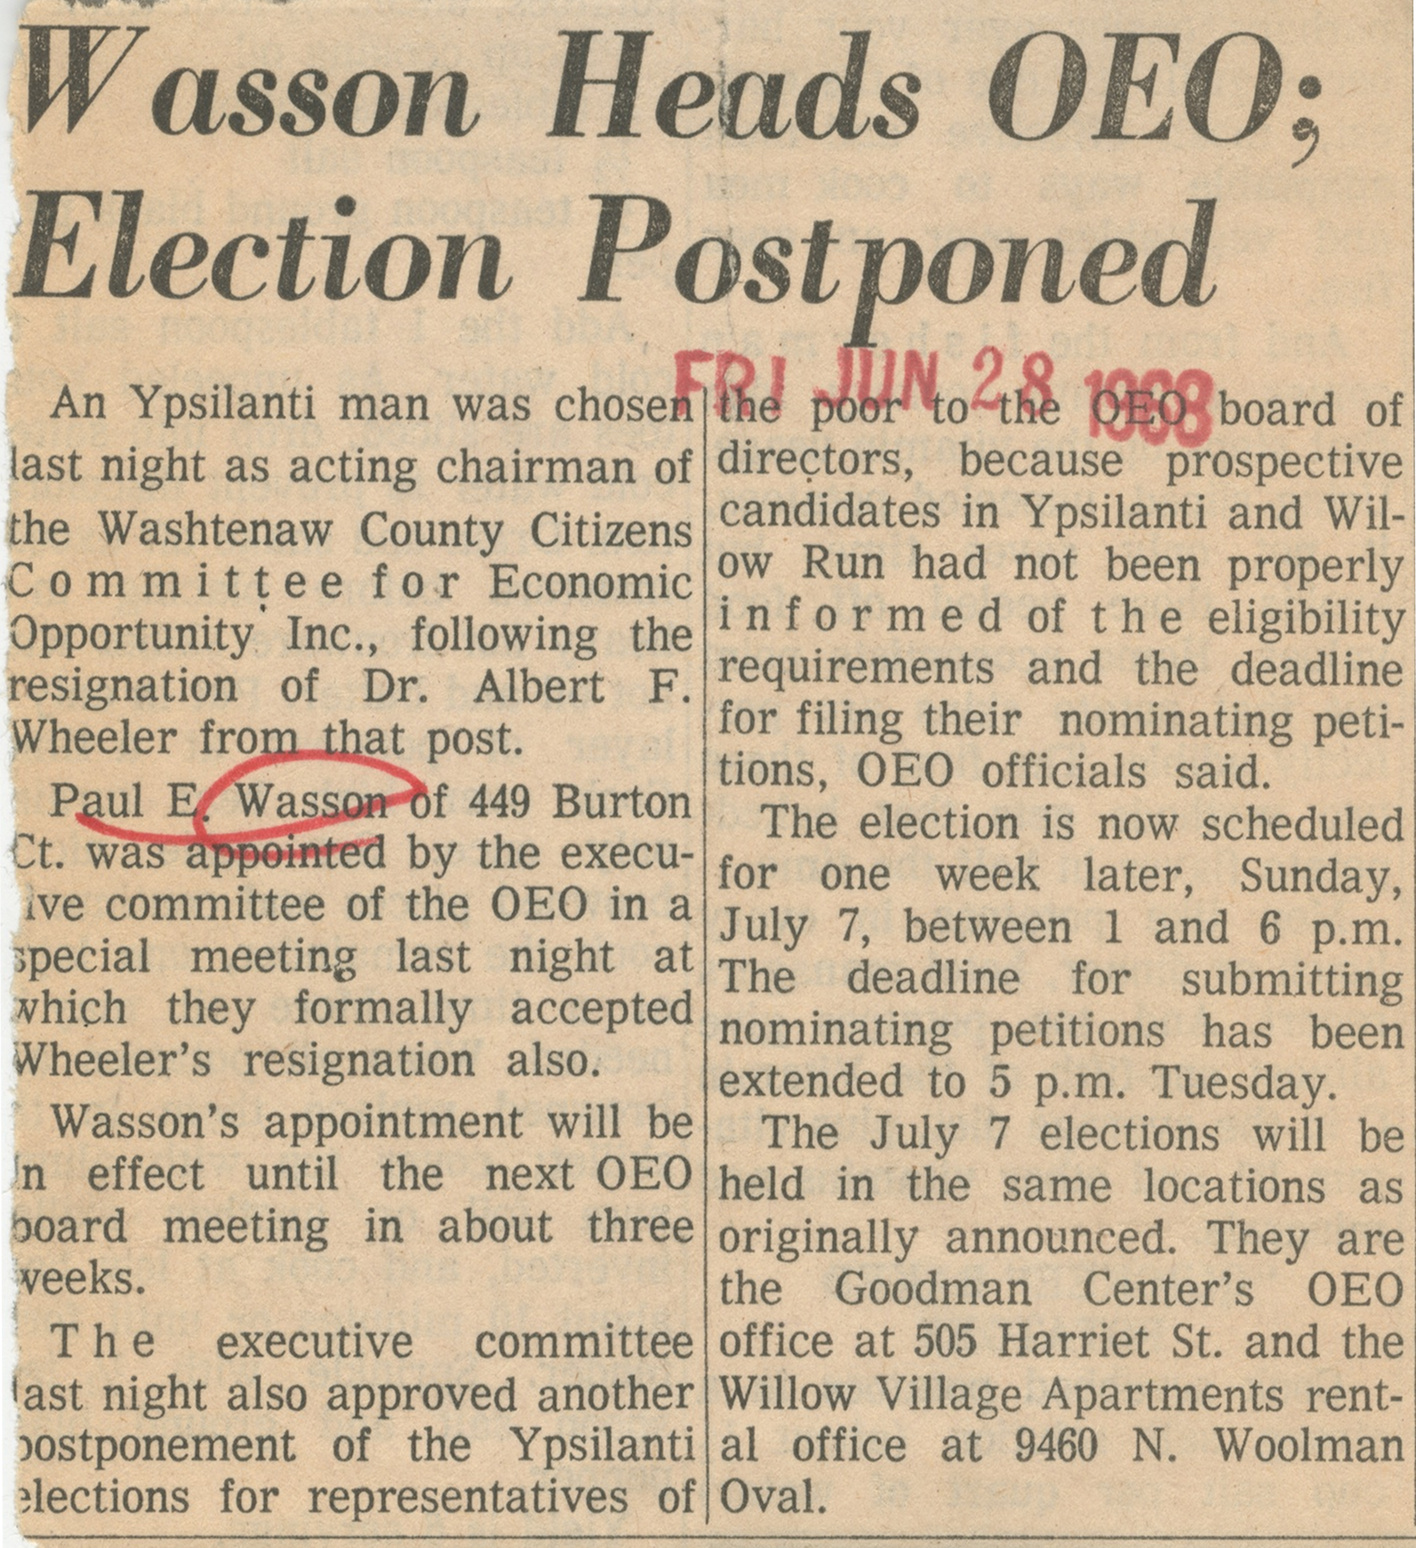 Wasson Heads OEO; Election Postponed image